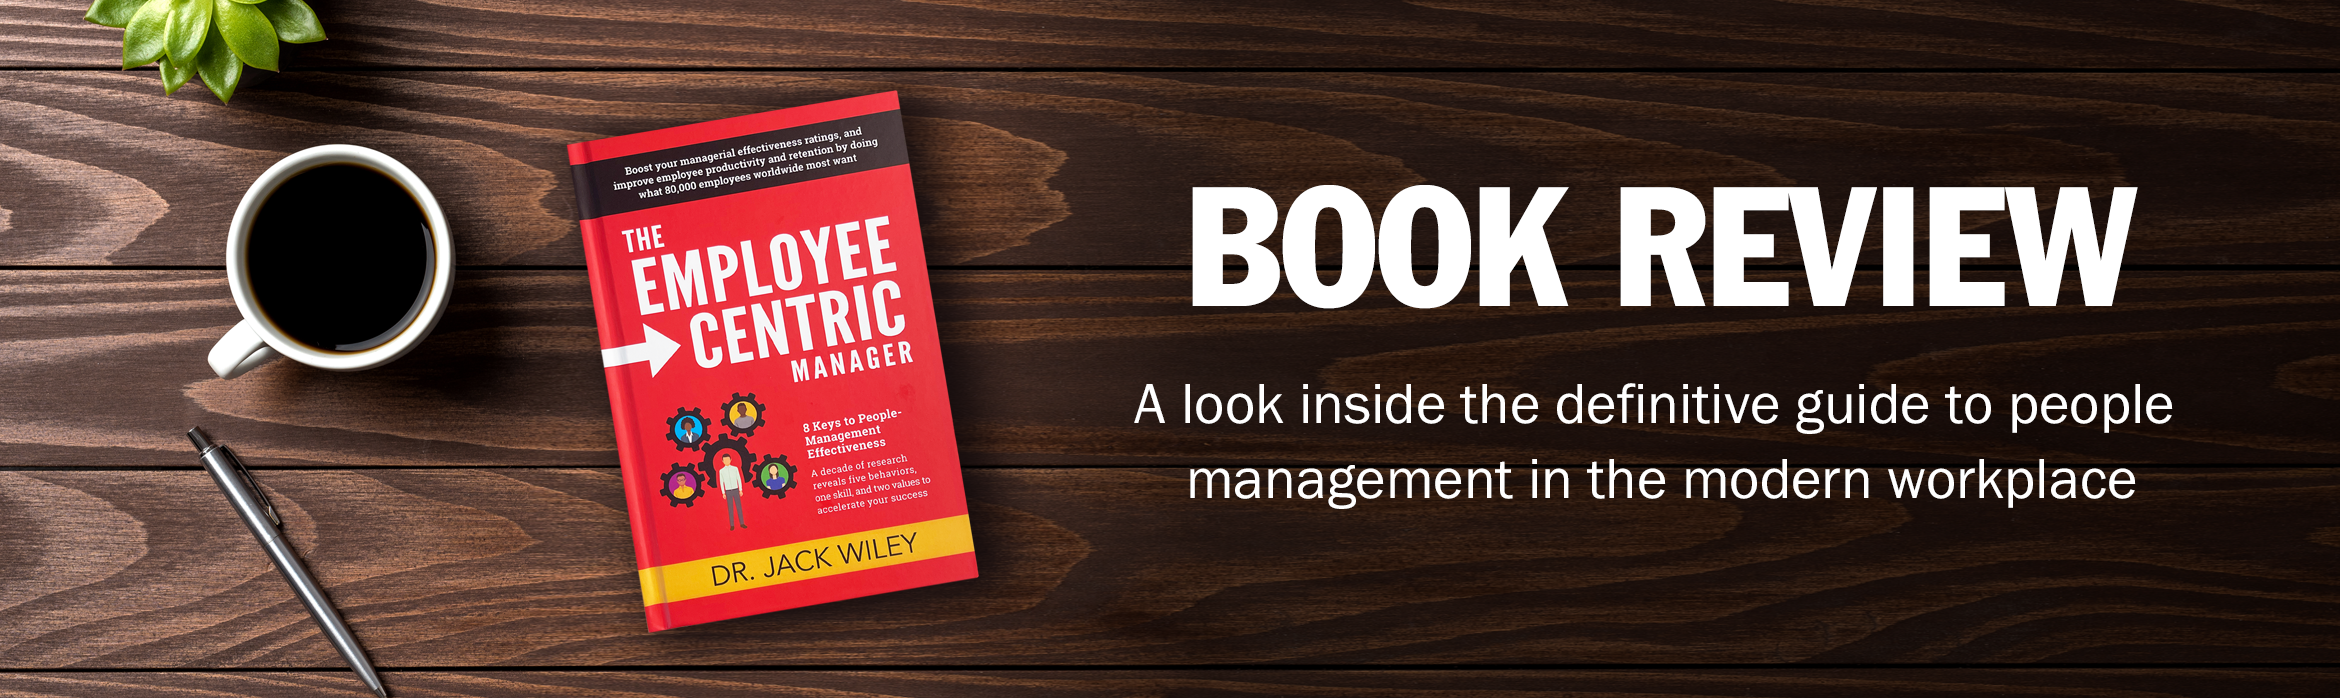 Book Review: A look inside the defintitive guide to people management